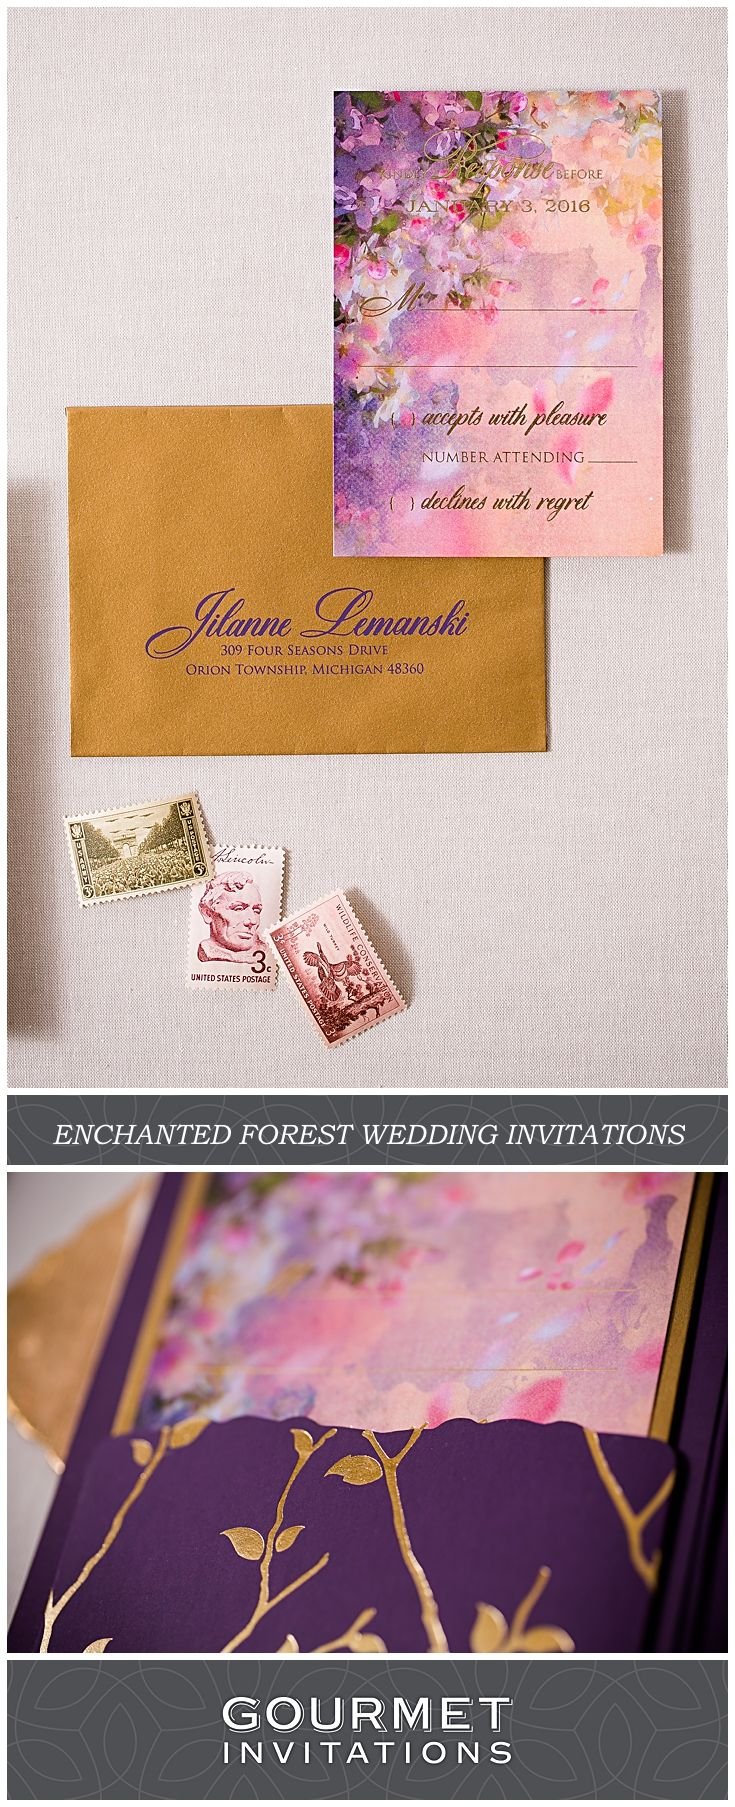 Enchanted Forest Invitations a Northern Michigan